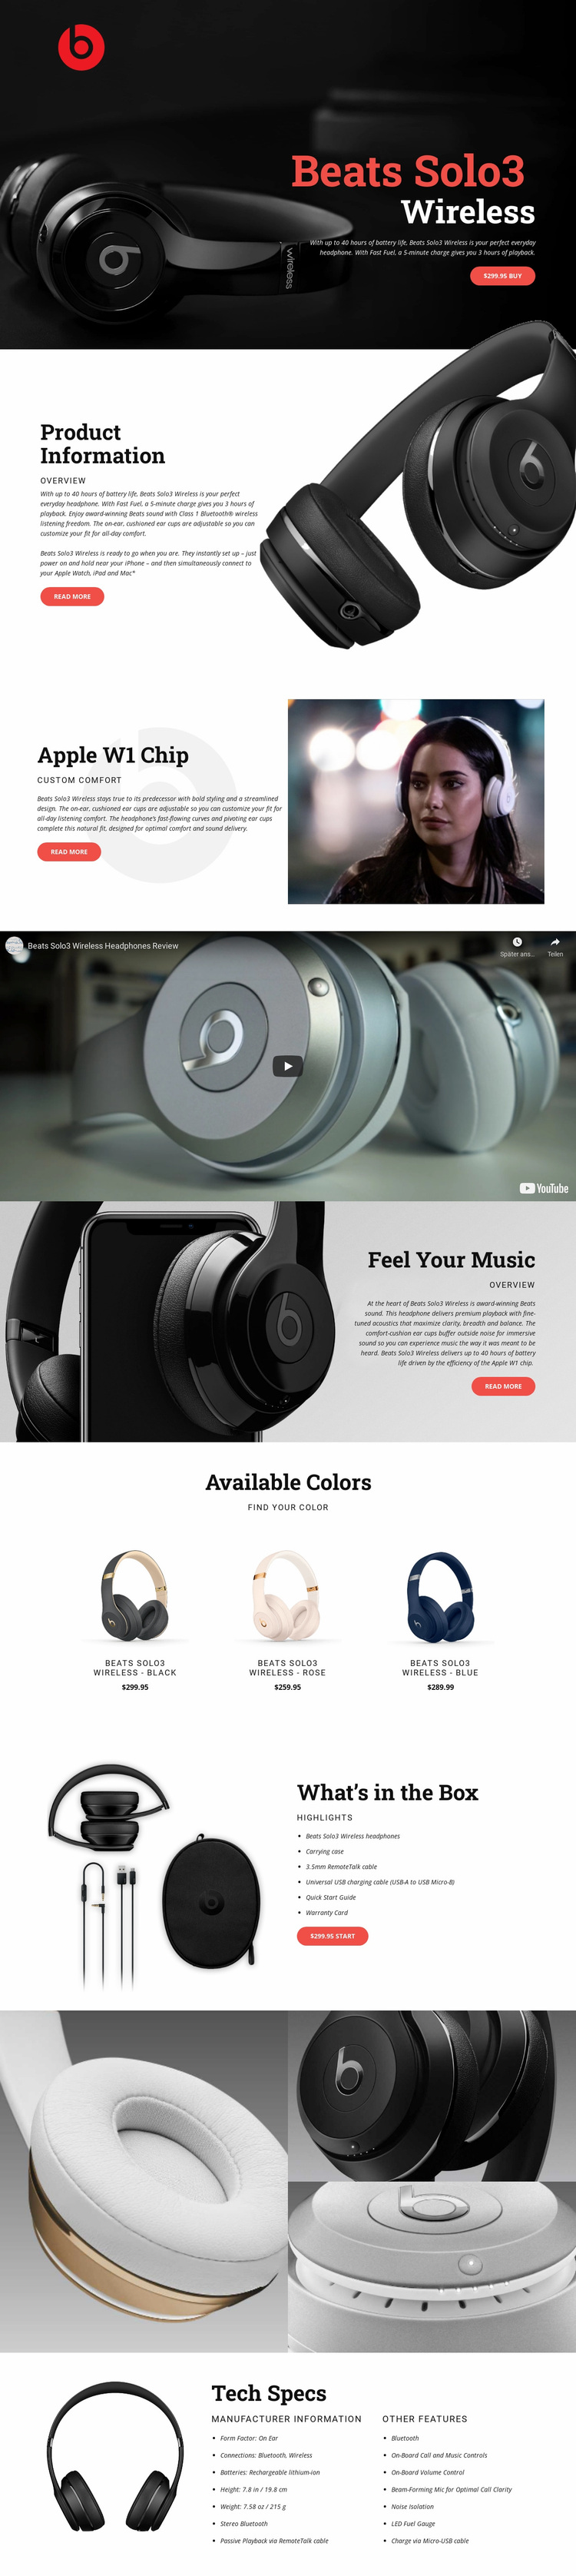 Outstanding quality of music Website Design